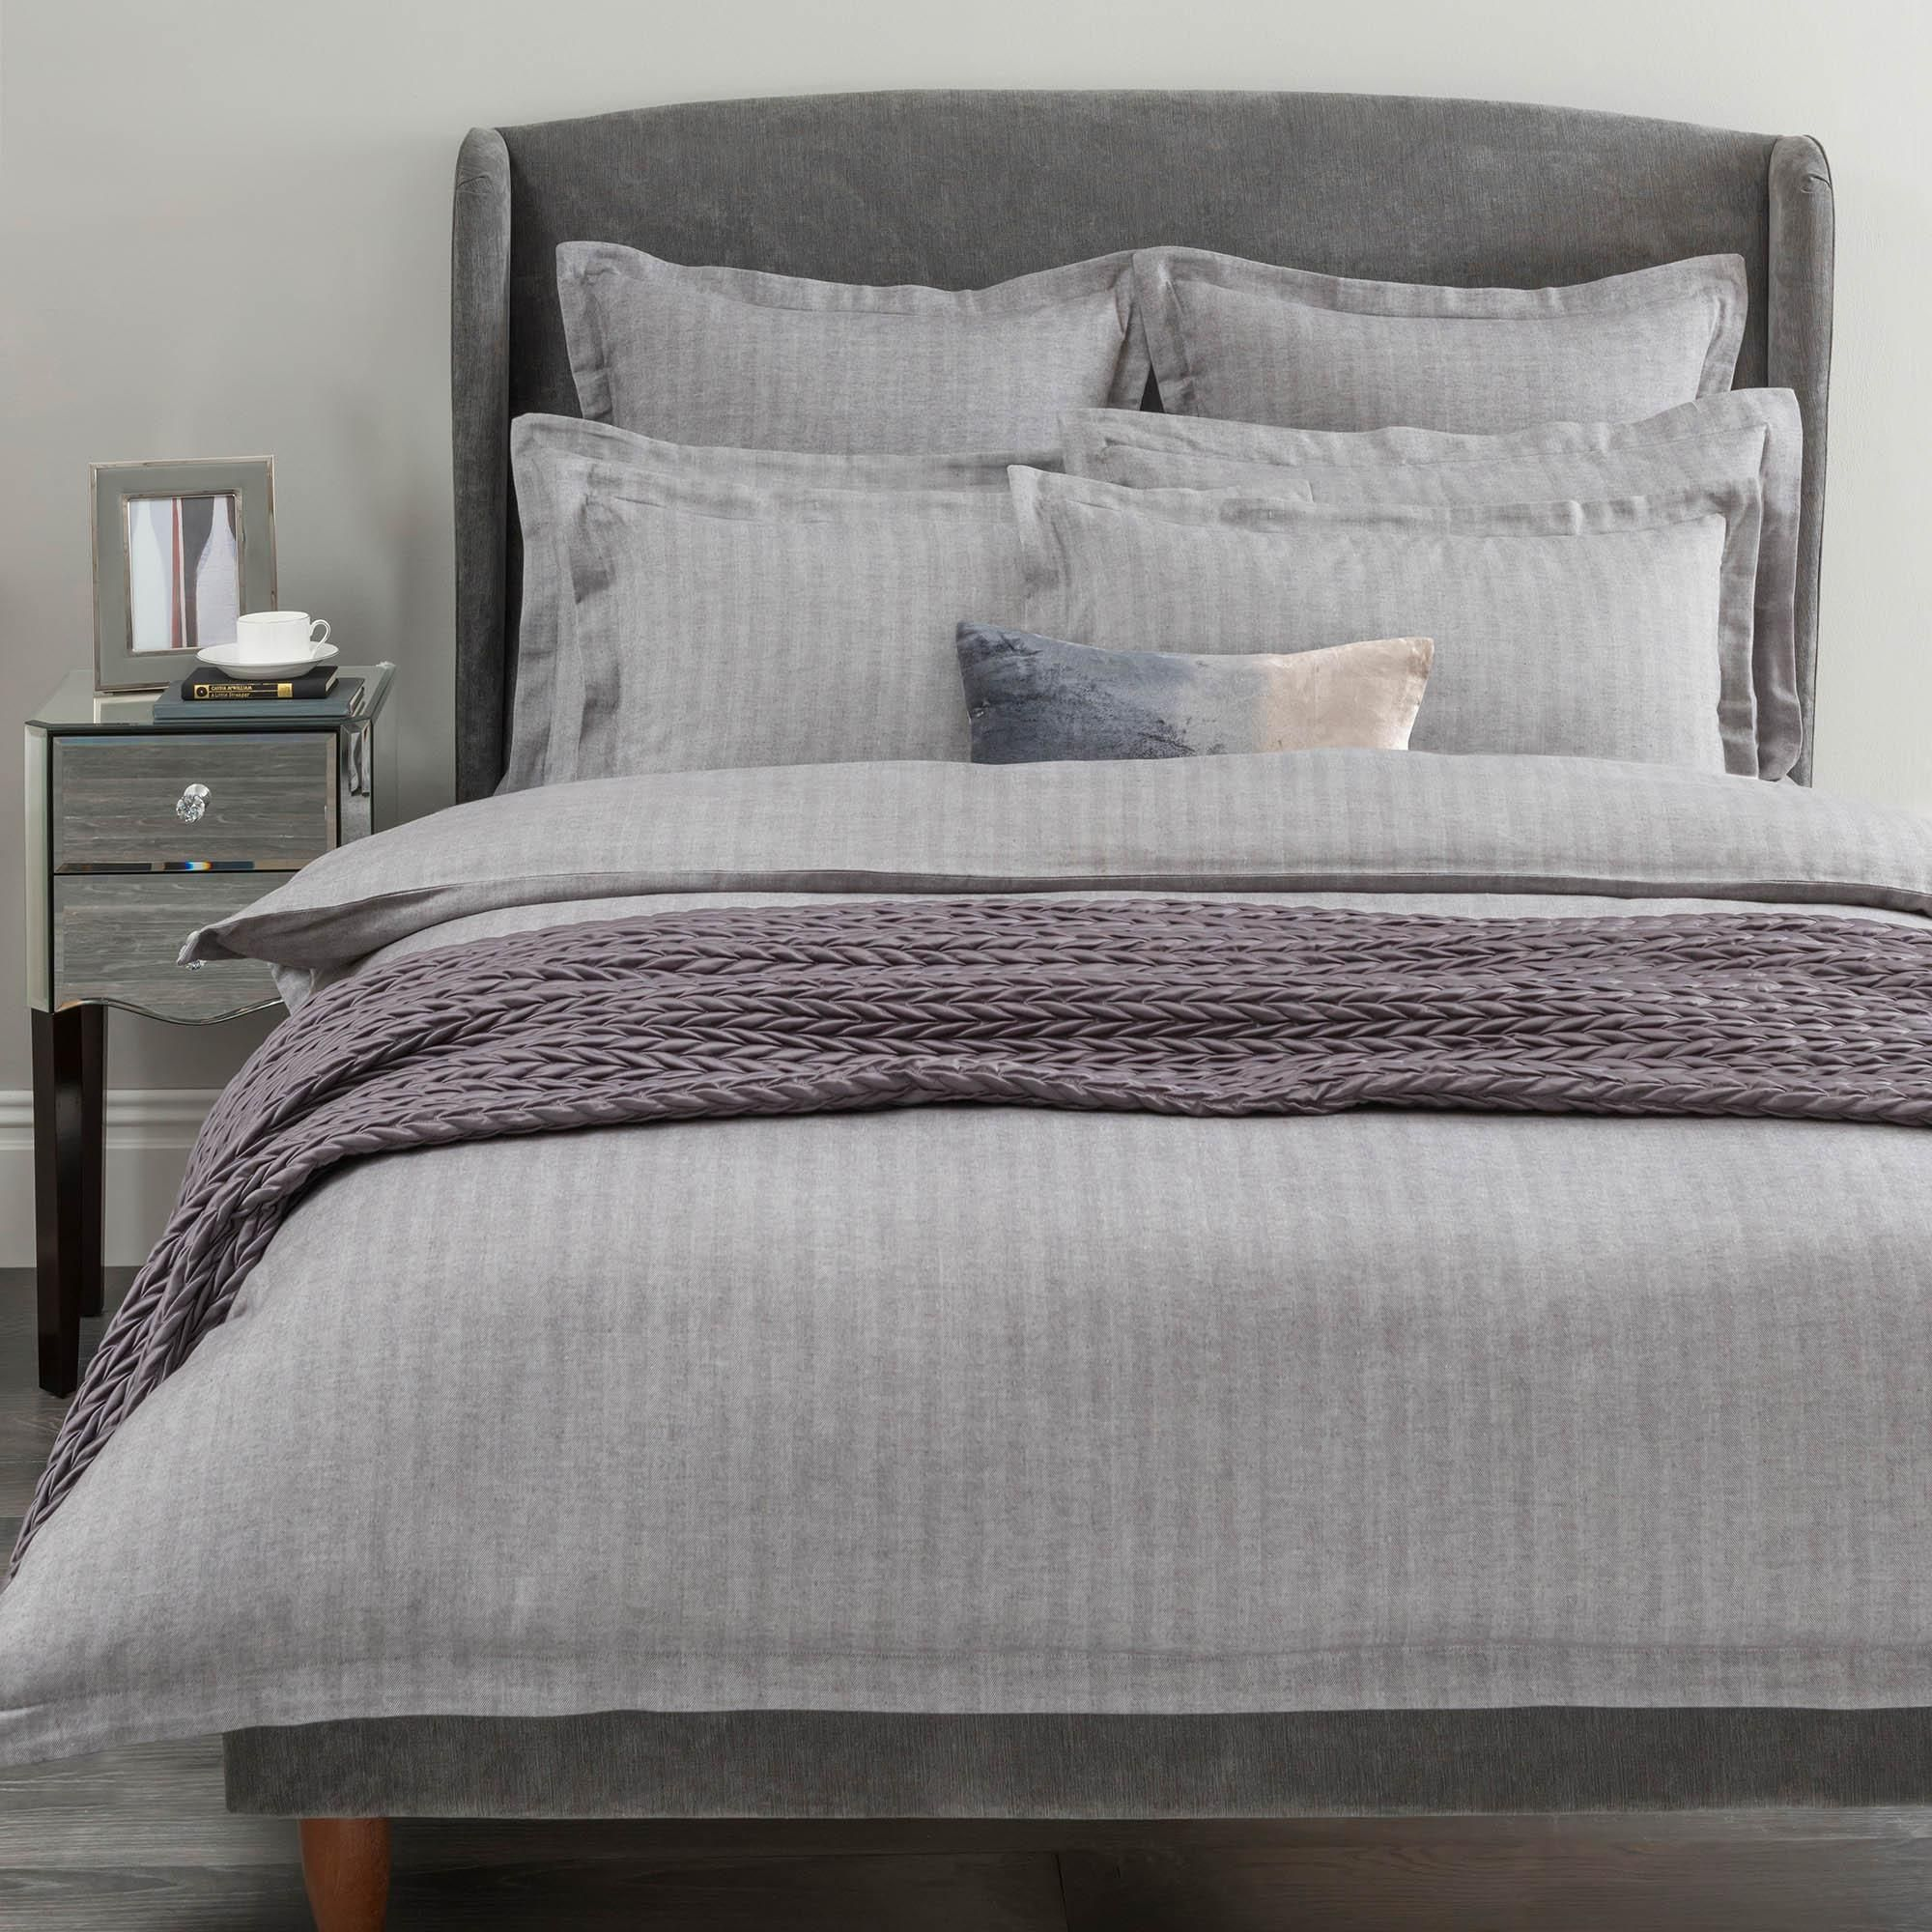 embroidered embroideredheaven products grey home heaven bela circle casa duvet cameo cover cotton